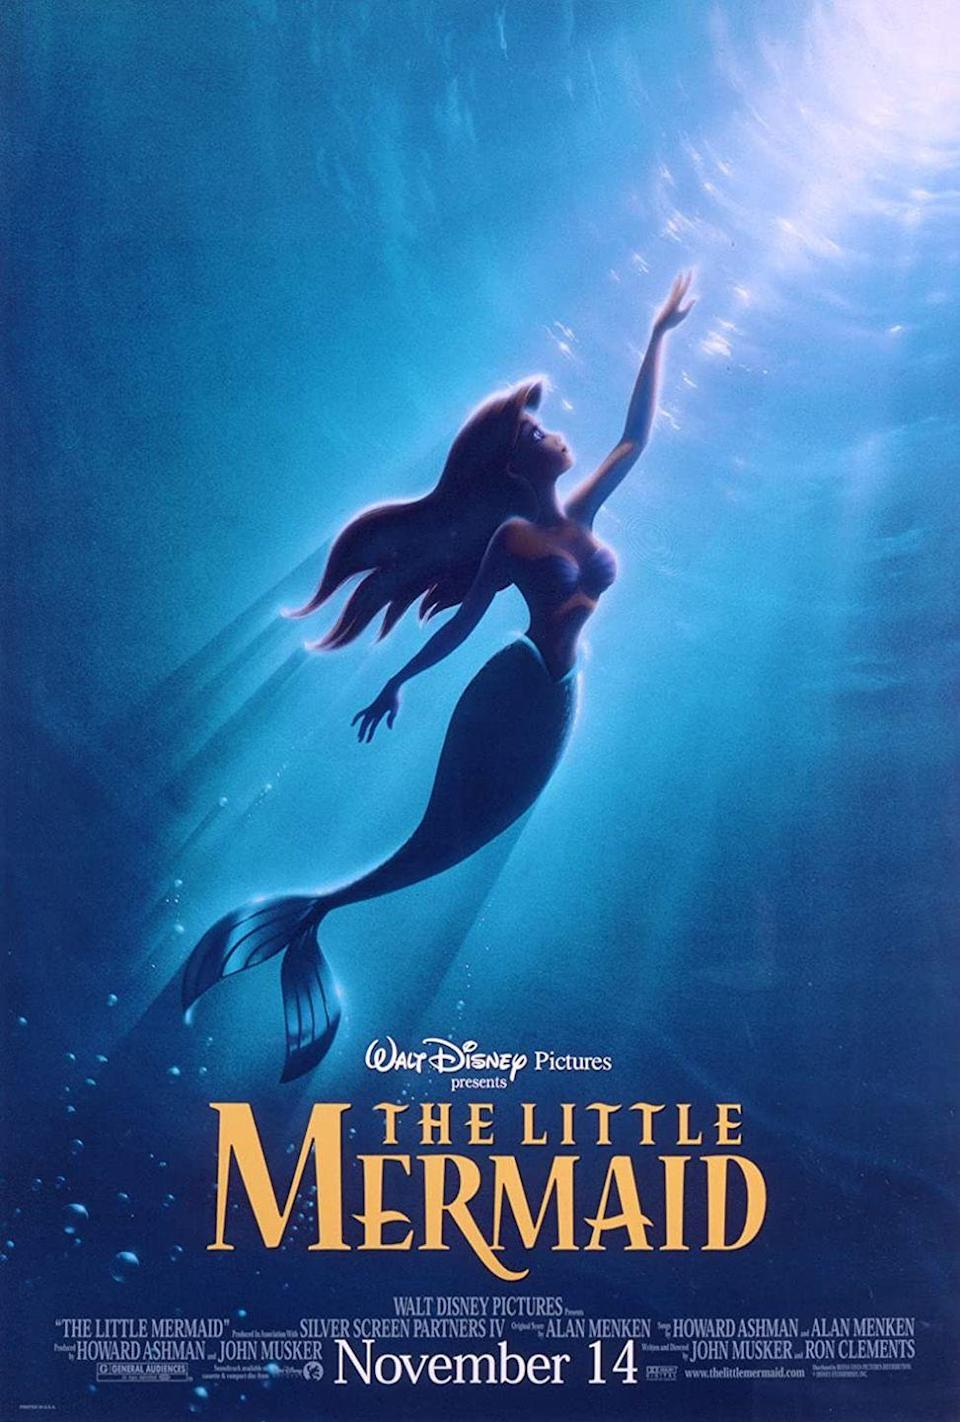 """<p>No, this Disney favorite from 1989 doesn't have a witch as the main character. (That would be the hopelessly-in-love mermaid Ariel.) But it does include the utterly bold and memorable sea witch character Ursula, on whom the entire plot turns.<br></p><p><a class=""""link rapid-noclick-resp"""" href=""""https://go.redirectingat.com?id=74968X1596630&url=https%3A%2F%2Fwww.disneyplus.com%2Fmovies%2Fthe-little-mermaid%2F5MpPFhS8FTXh&sref=https%3A%2F%2Fwww.womansday.com%2Flife%2Fentertainment%2Fg37360837%2Fbest-witch-movies%2F"""" rel=""""nofollow noopener"""" target=""""_blank"""" data-ylk=""""slk:WATCH NOW"""">WATCH NOW</a></p>"""